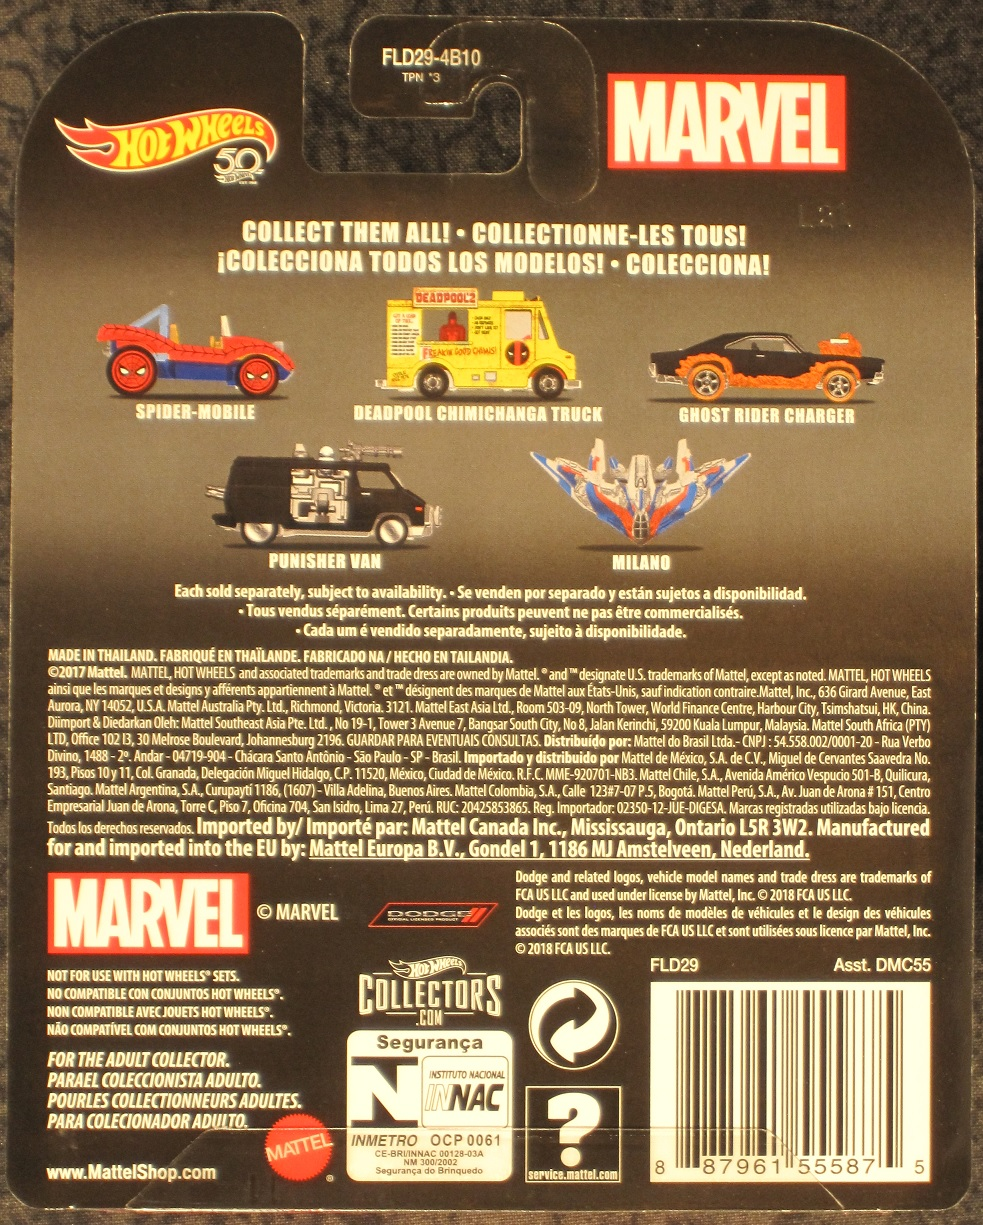 Ghost Rider Charger in Flames Die-Cast Vehicle